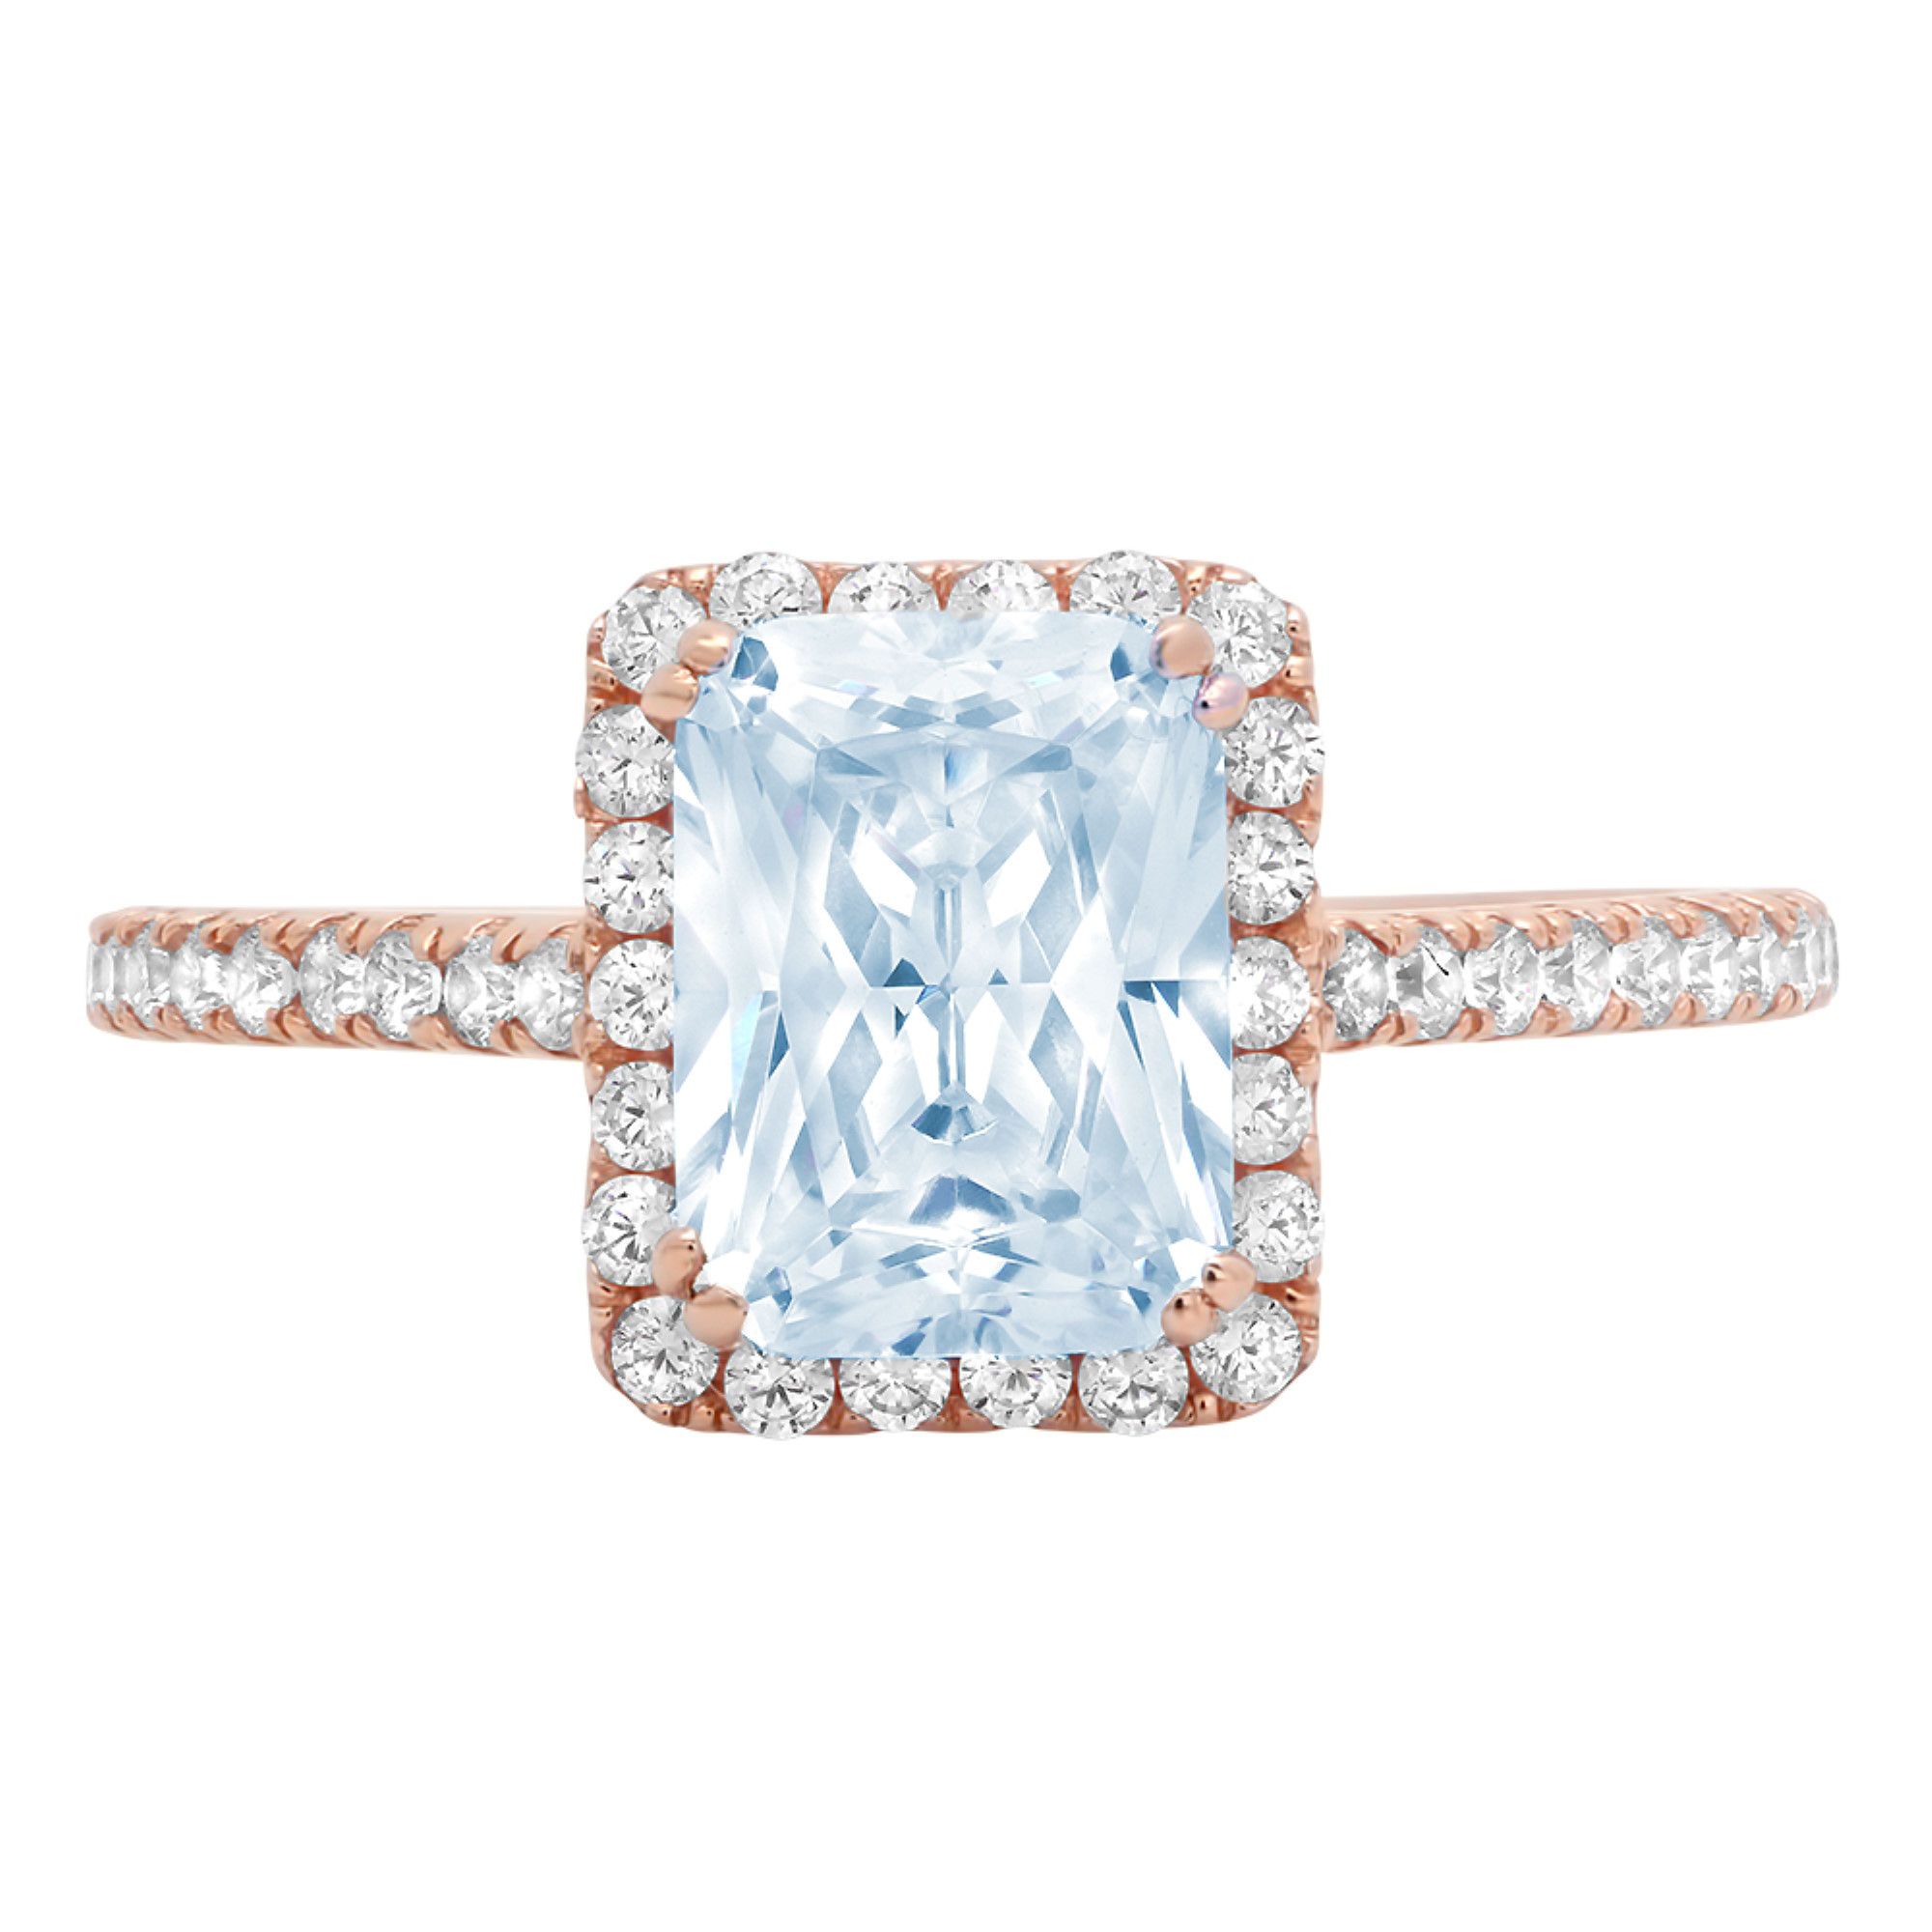 Details about  /1.98 ct Emerald Cut Clear CZ 18k Yellow Gold Halo Wedding Promise Bridal Ring